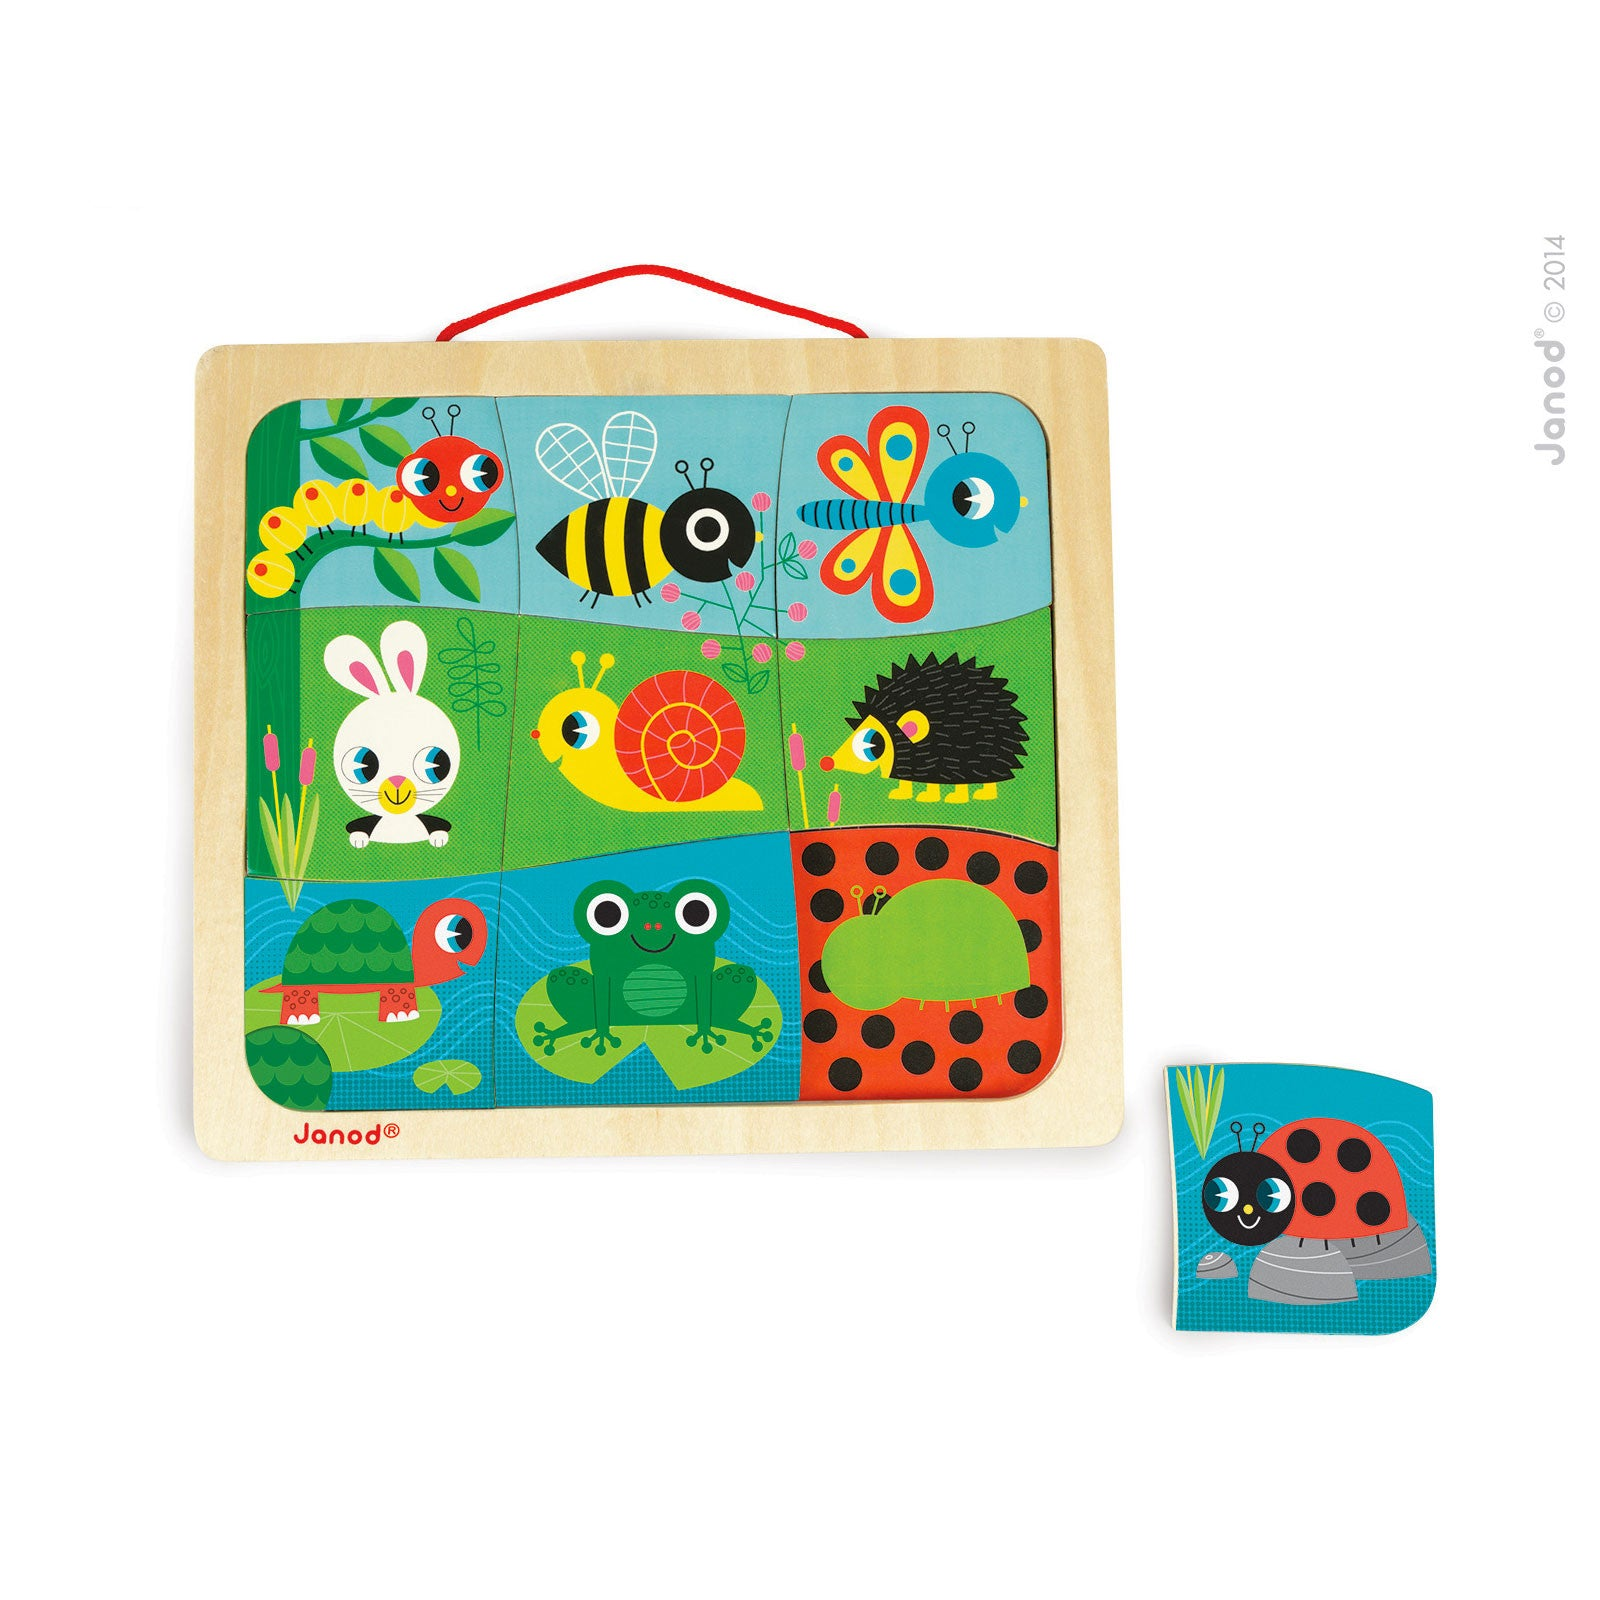 Janod Happy Garden Magnetic Puzzle Little Earth Nest